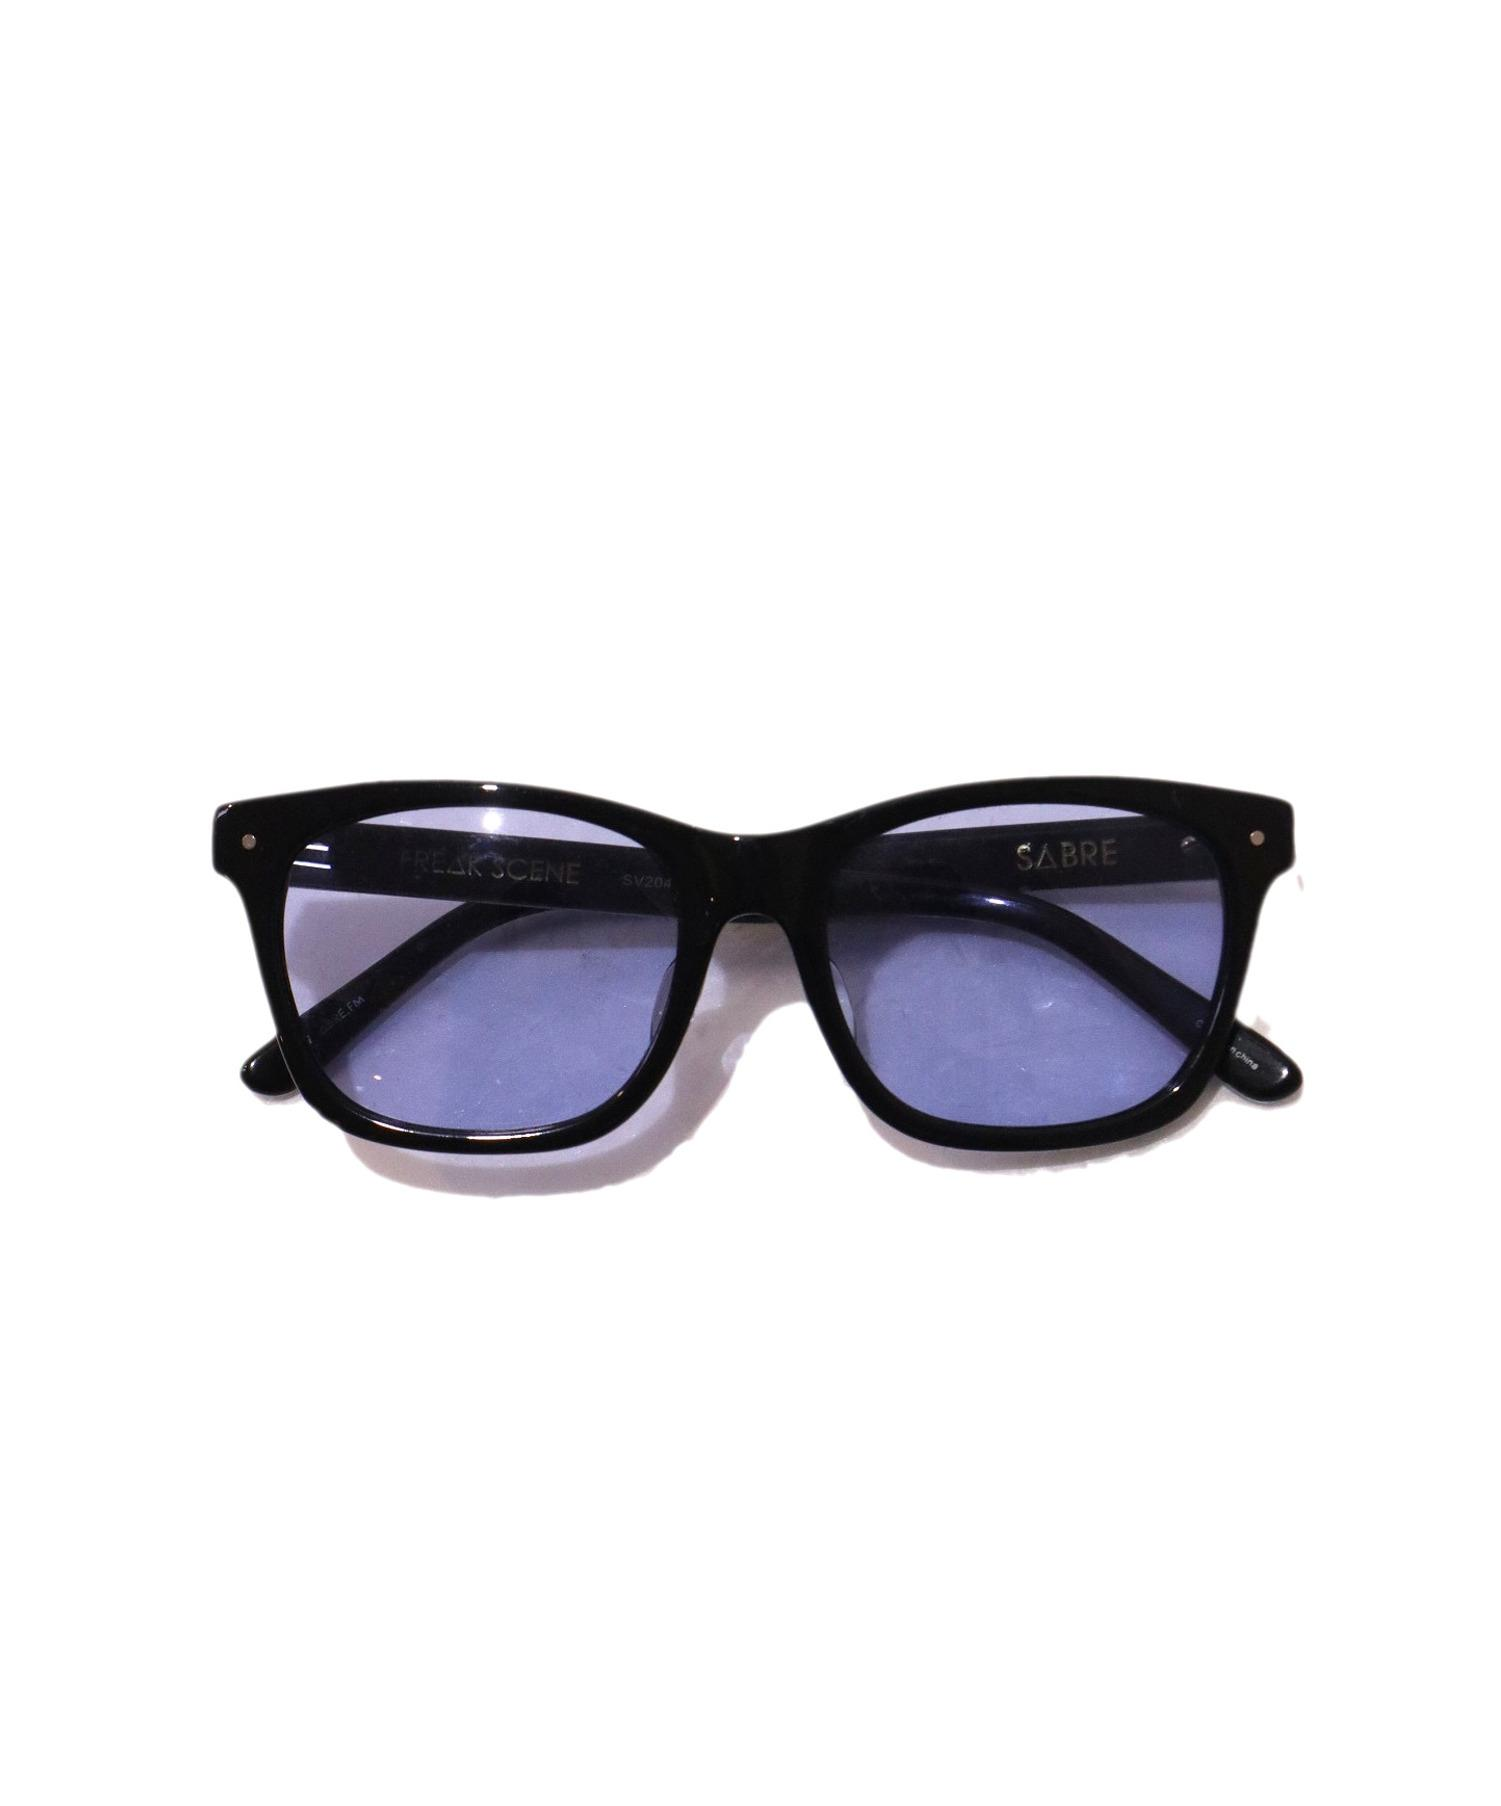 Freak Scene Sonnenbrille L transparent 1